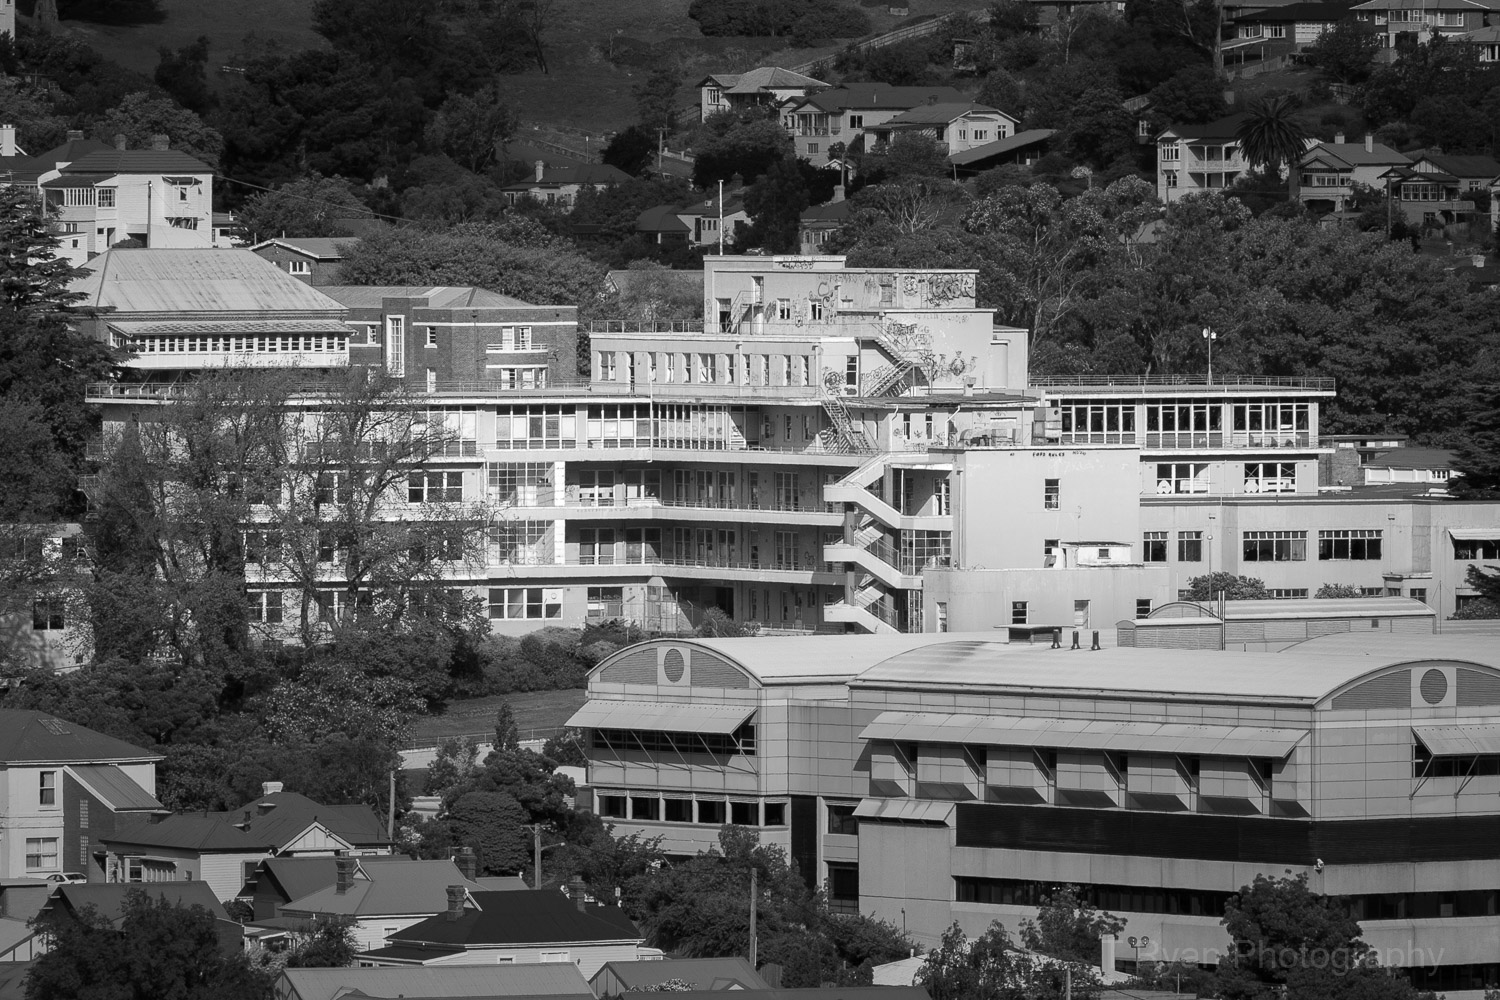 A view of the abandoned Launceston General Hospital I captured before redevelopment in 2007. Note the stunning spiral staircase which was demolished as part of the redevelopment. The current hospital can be seen in the foreground.